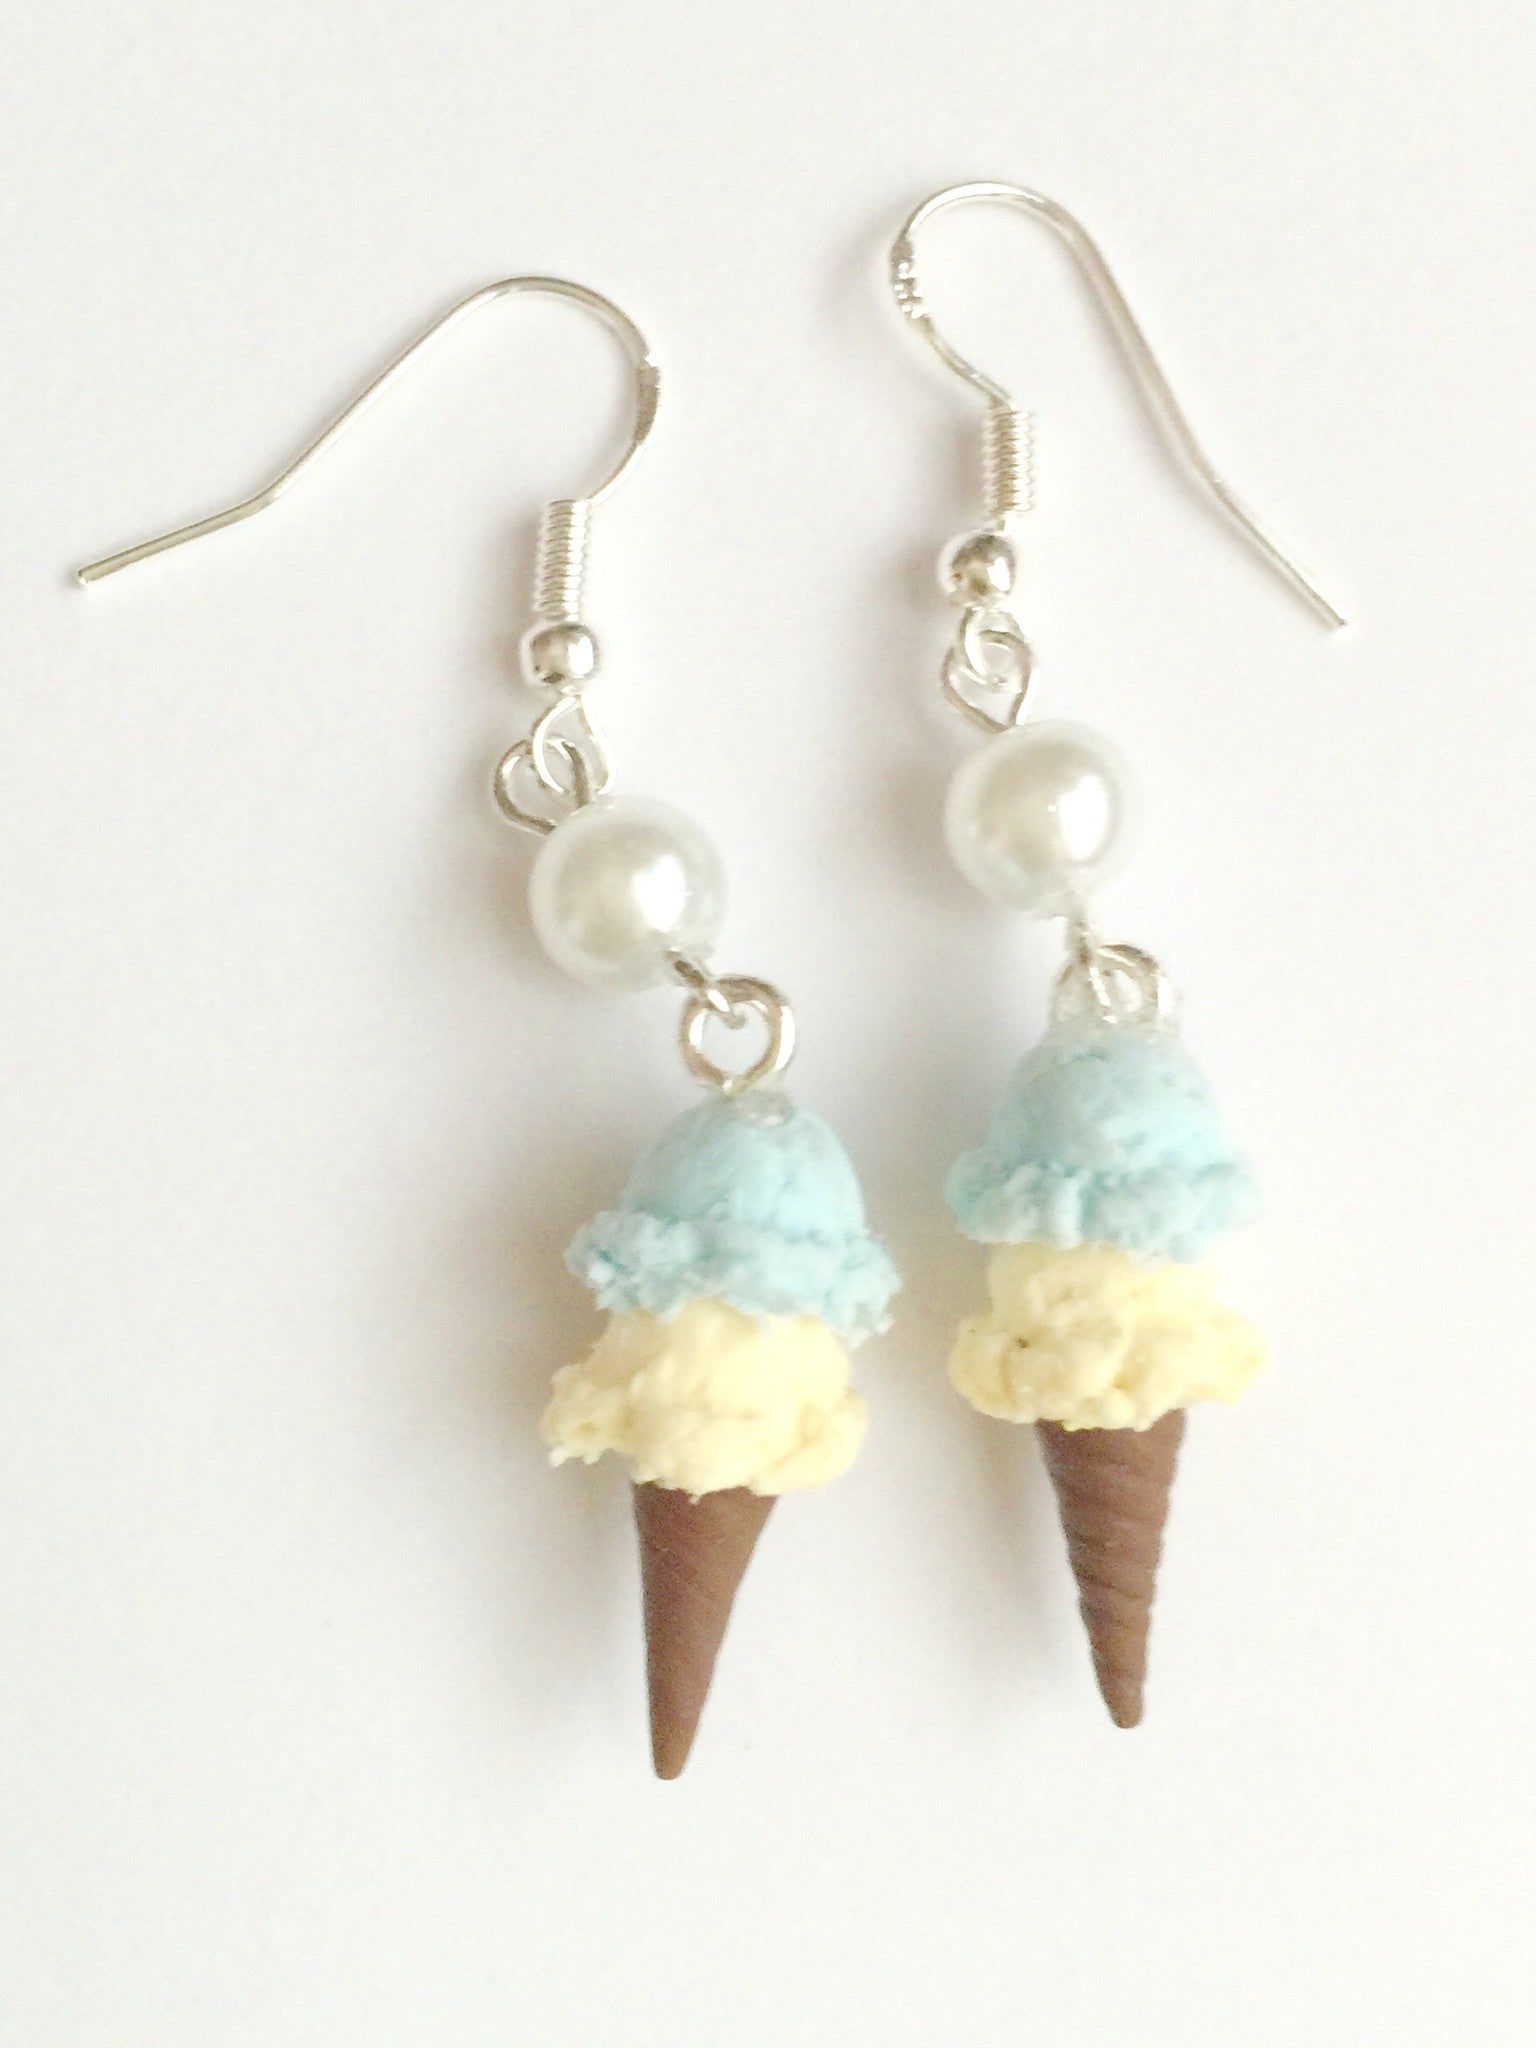 ice cream cone earrings - Jillicious charms and accessories - 3